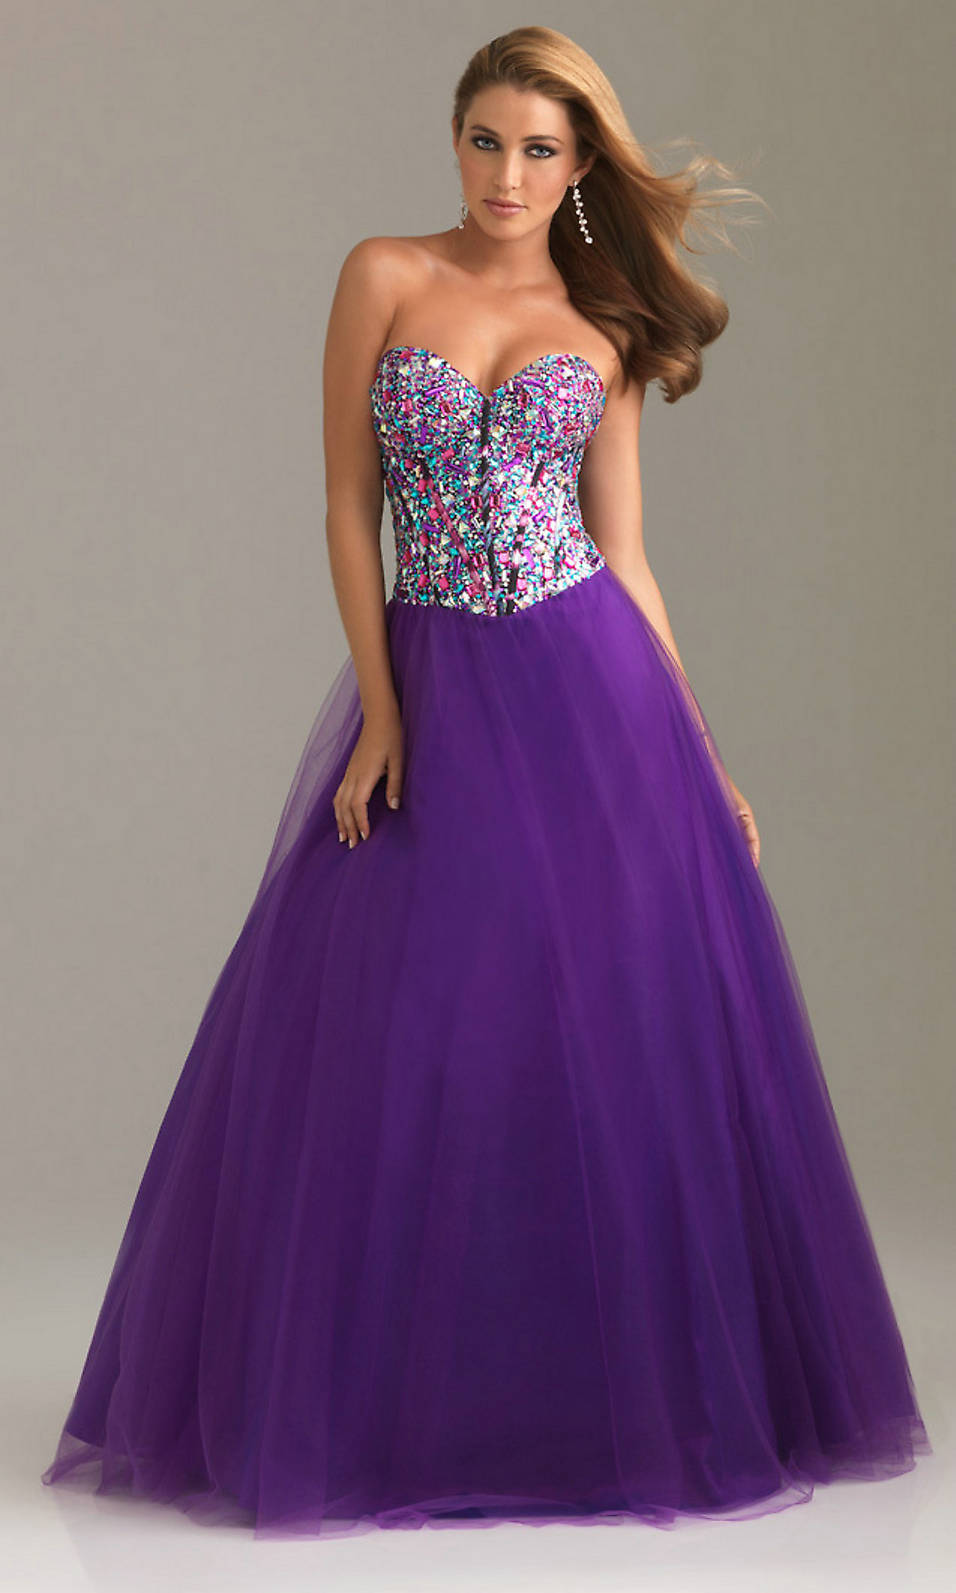 Strapless Lavender Dress